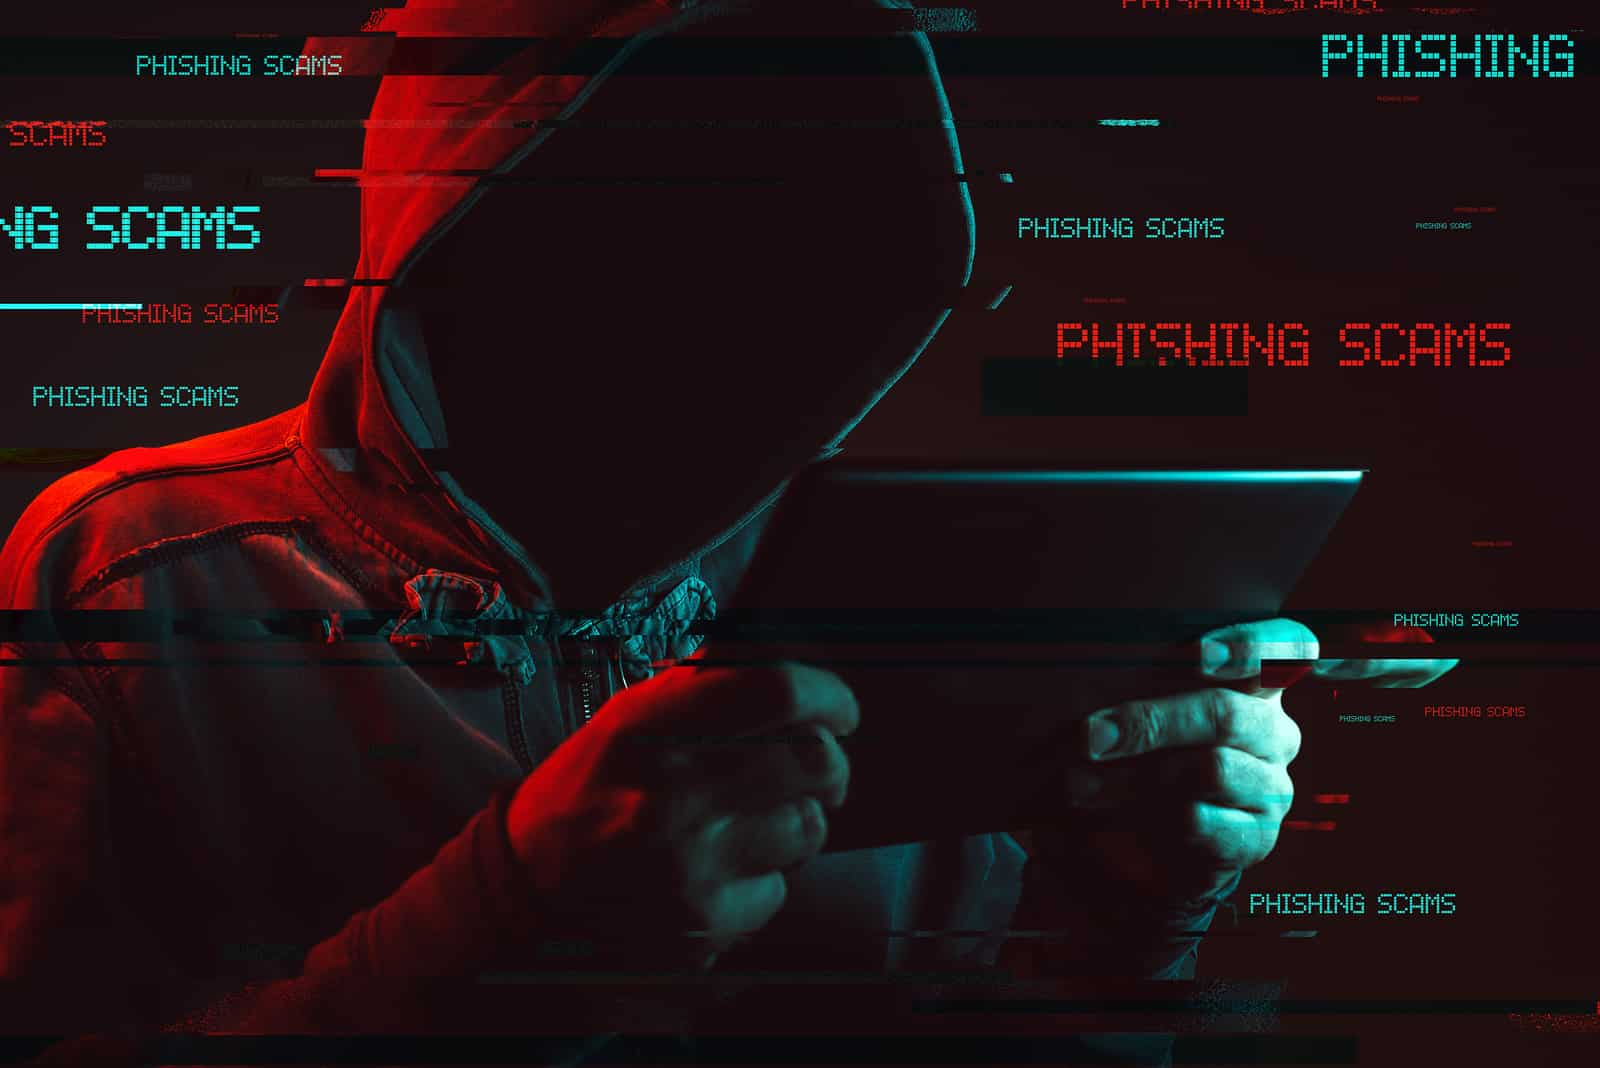 65% of attack groups used spear-phishing as the primary infection vector